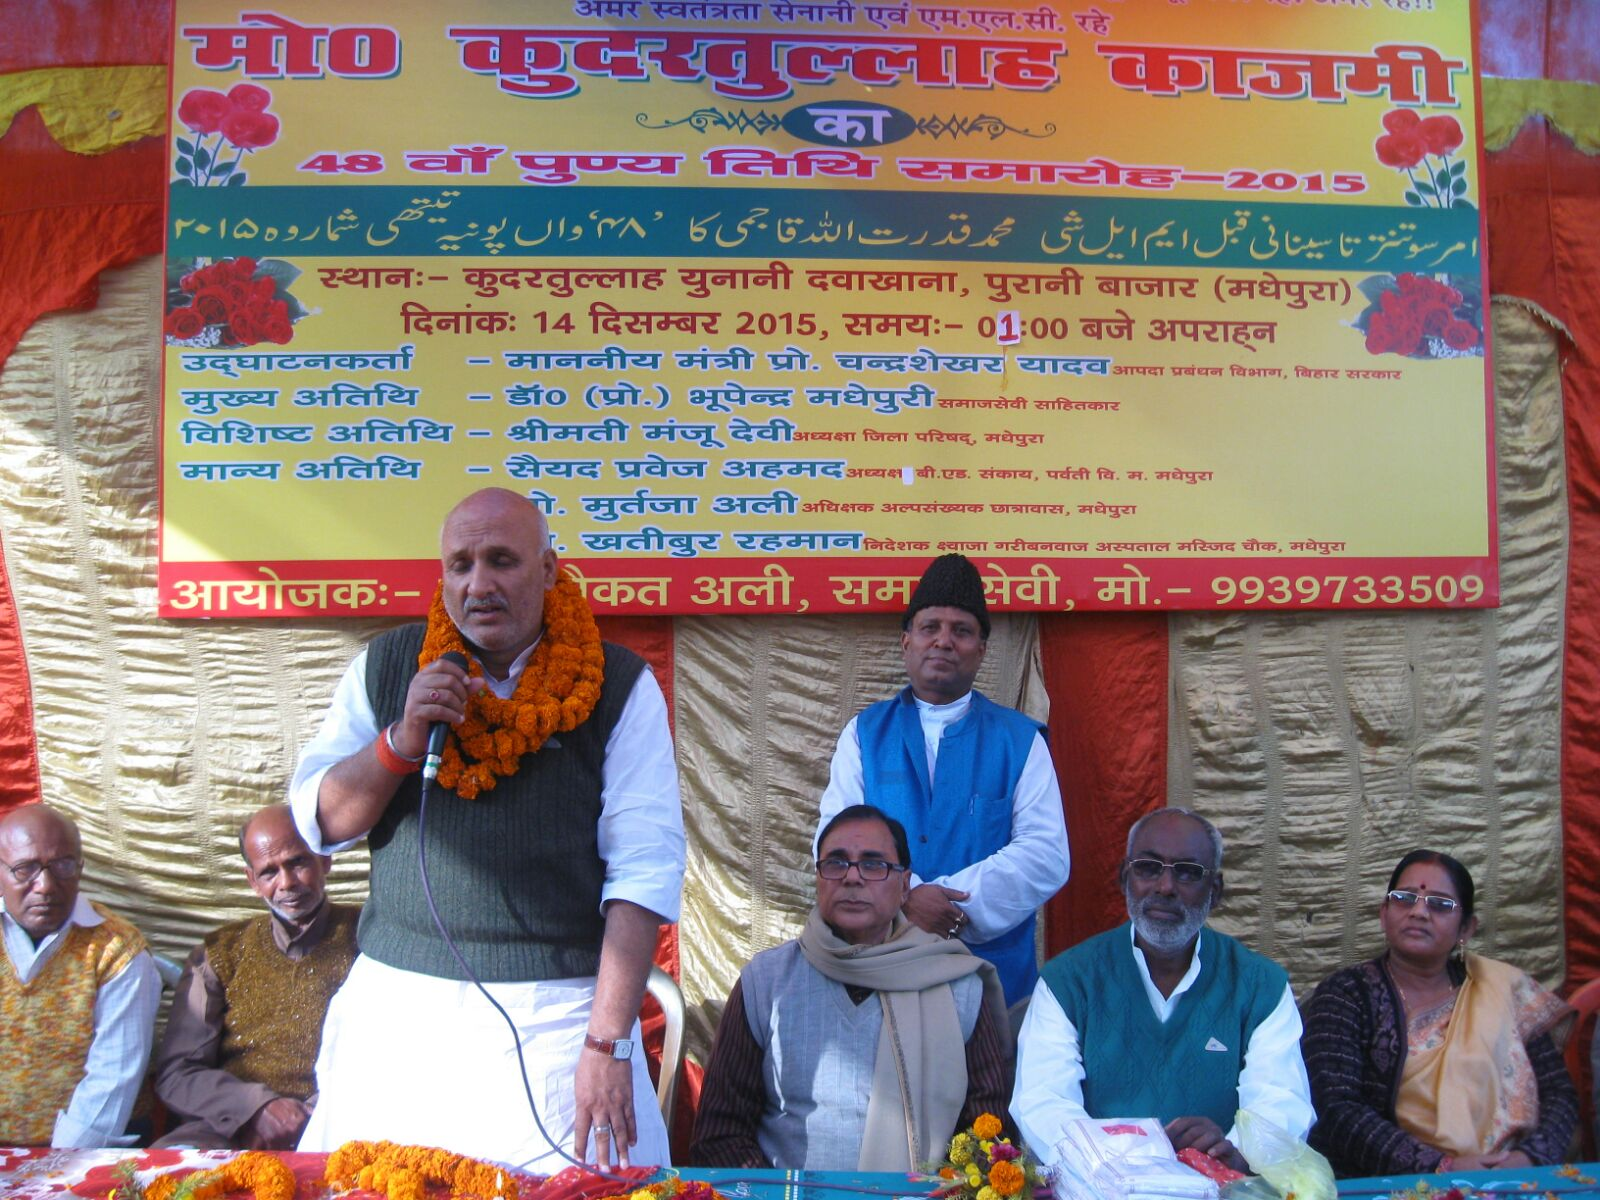 Minister Prof.Chandrashekhar addressing the people in the campus of Kudratullah Unani Dawakhana, Madhepura .